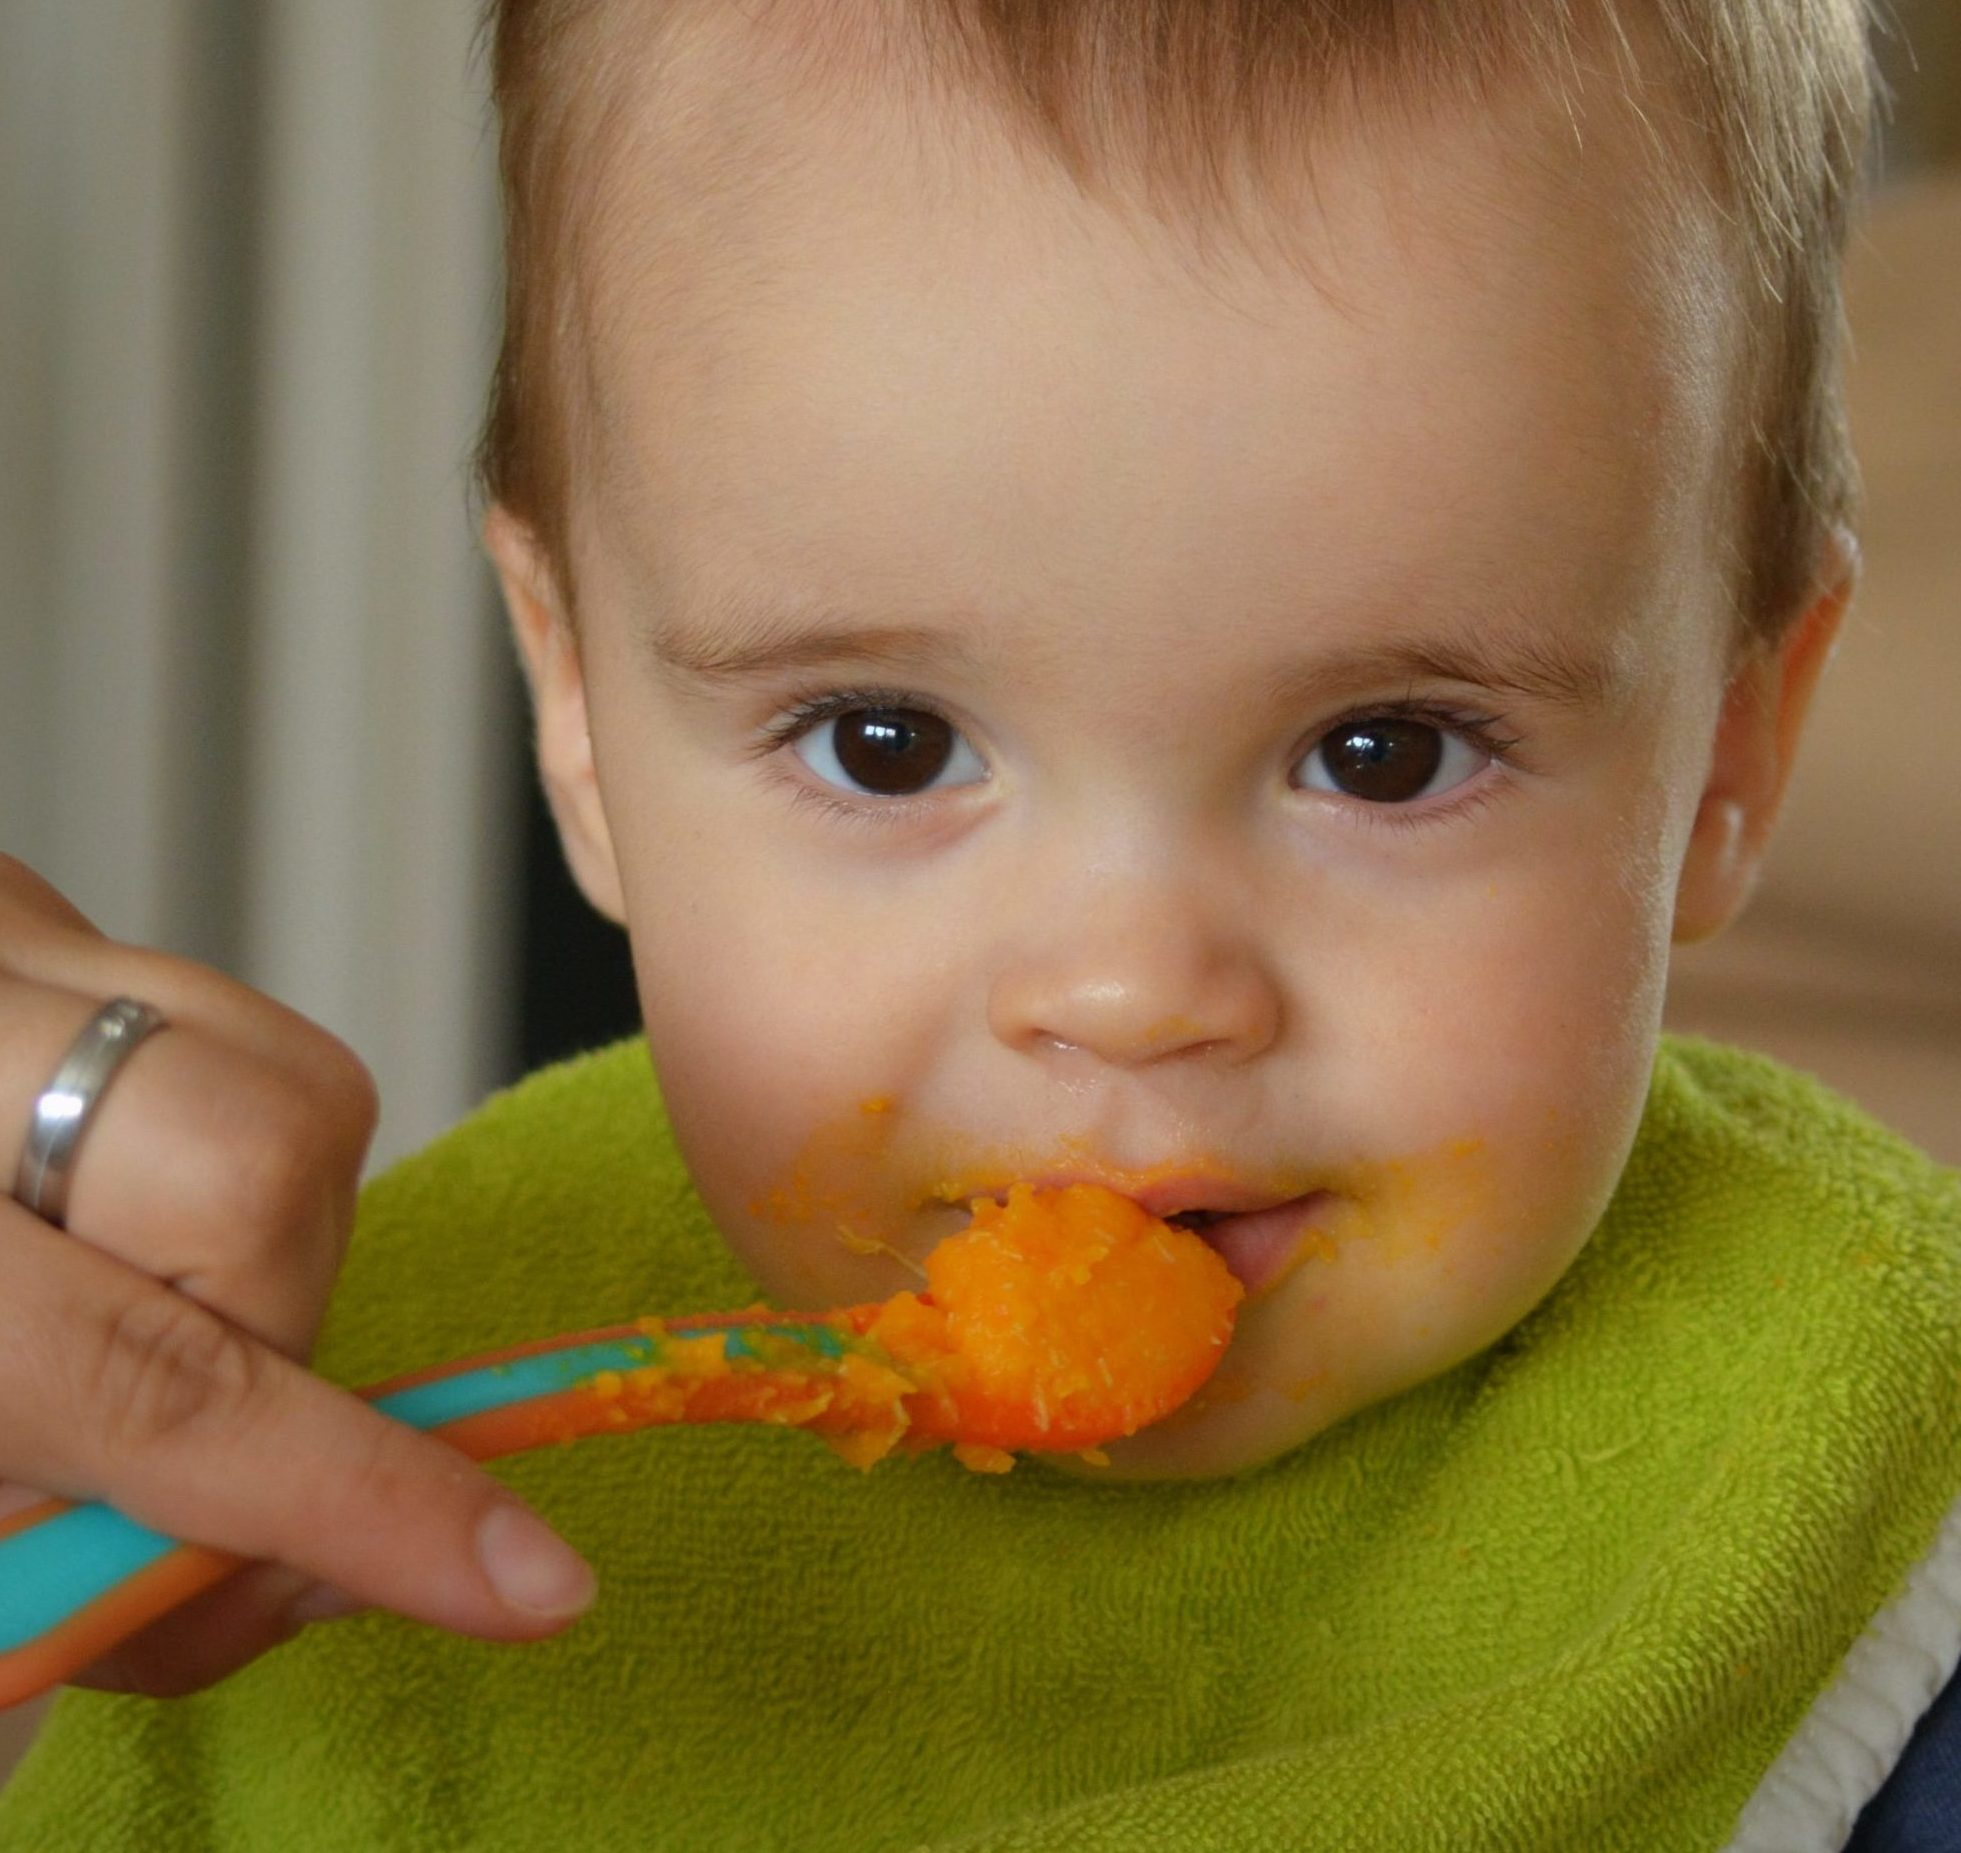 A baby being fed with a spoon